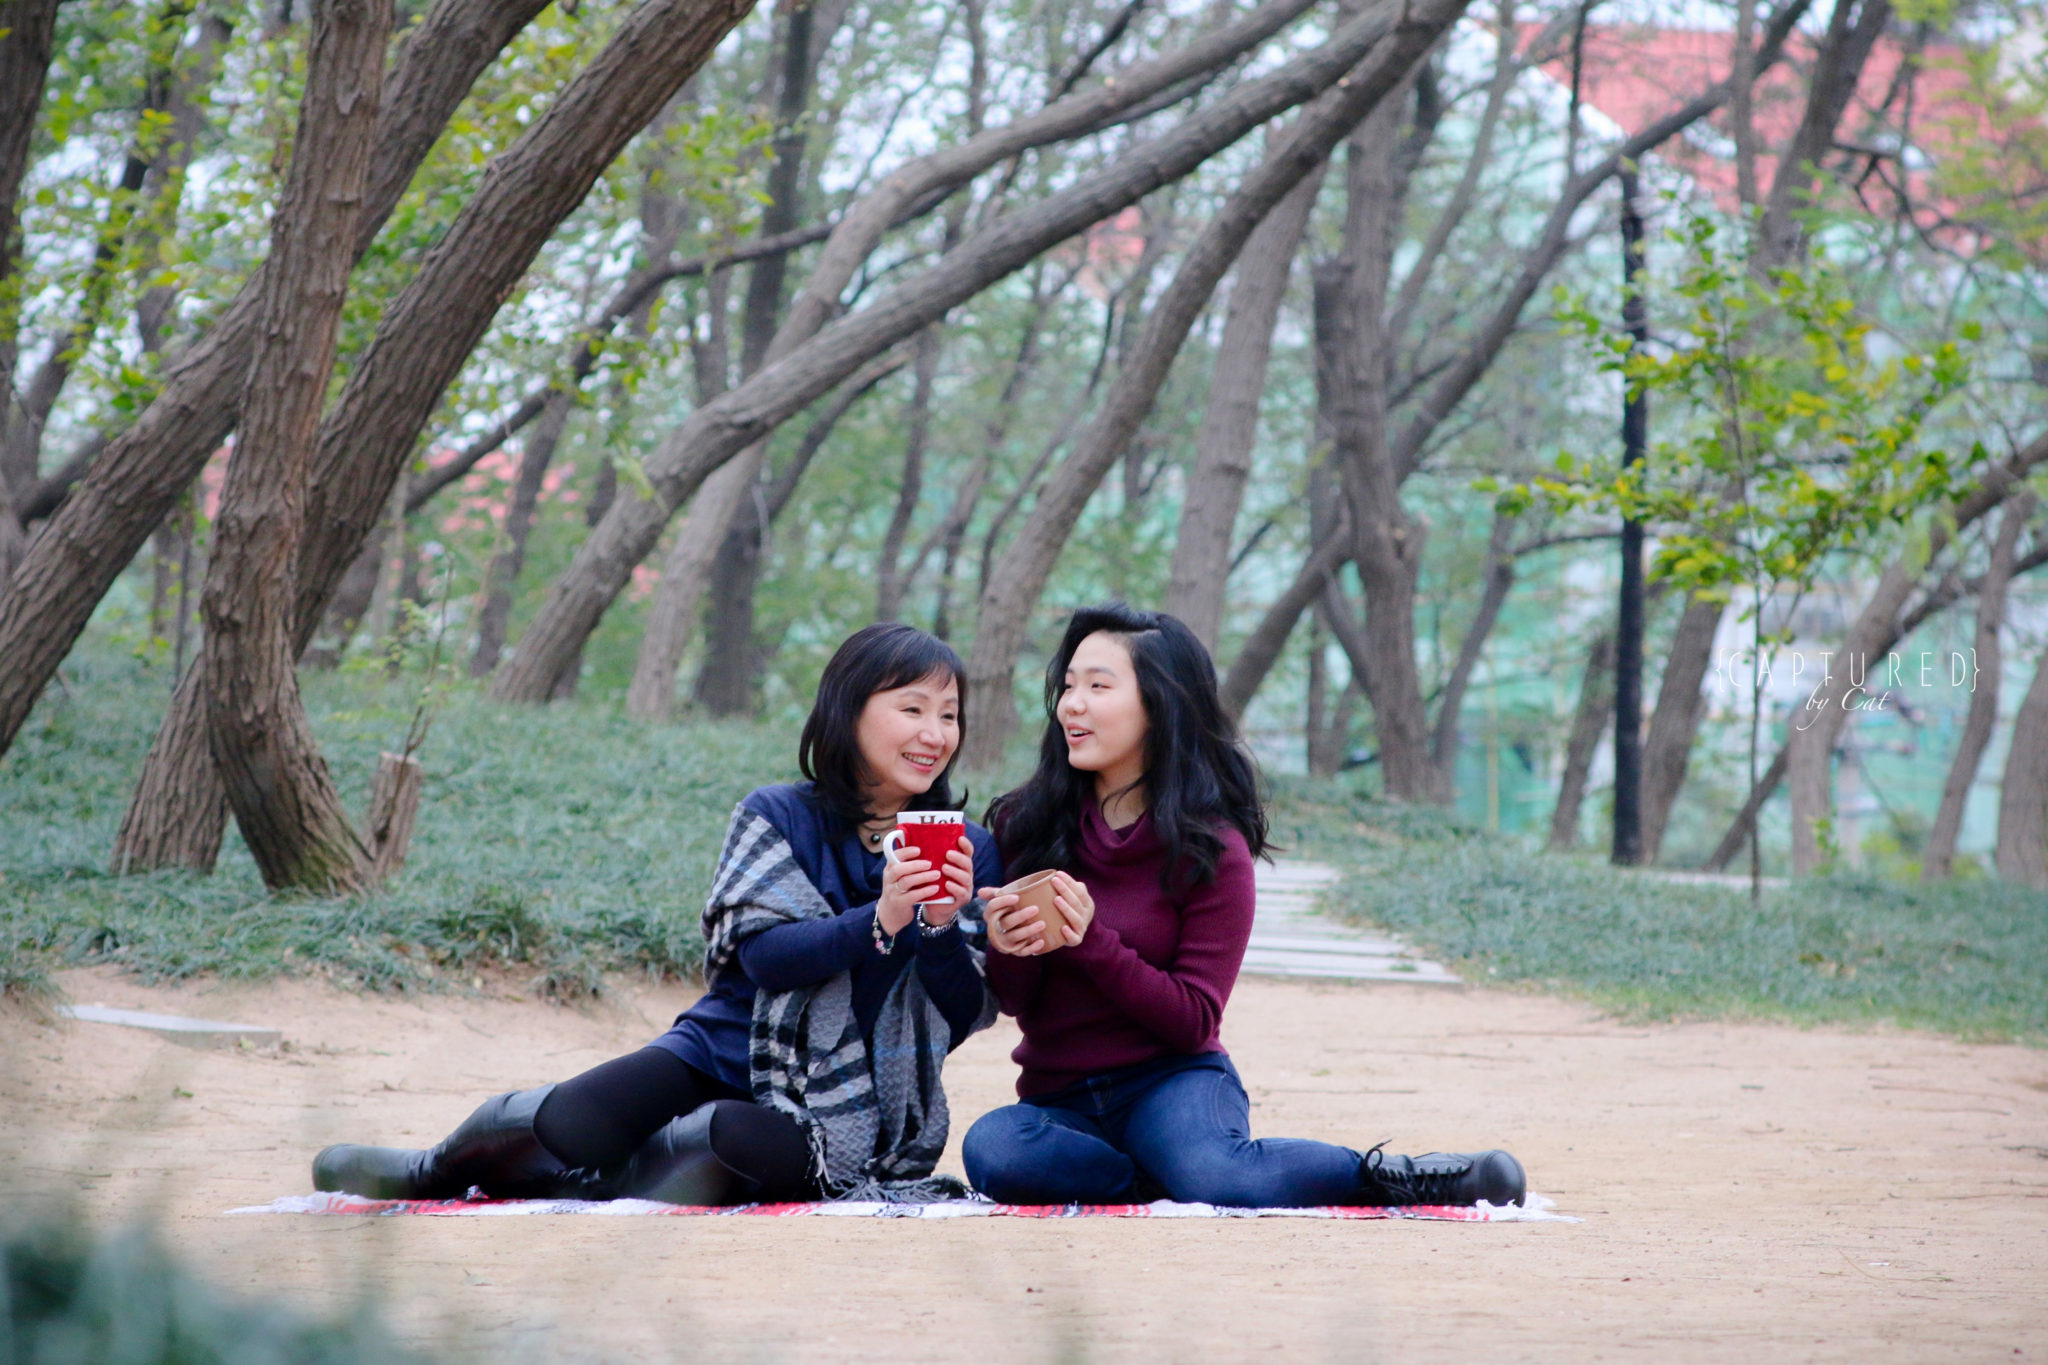 Yu Mother & Daughter Shoot │ Qingdao - CAPTURED by Cat